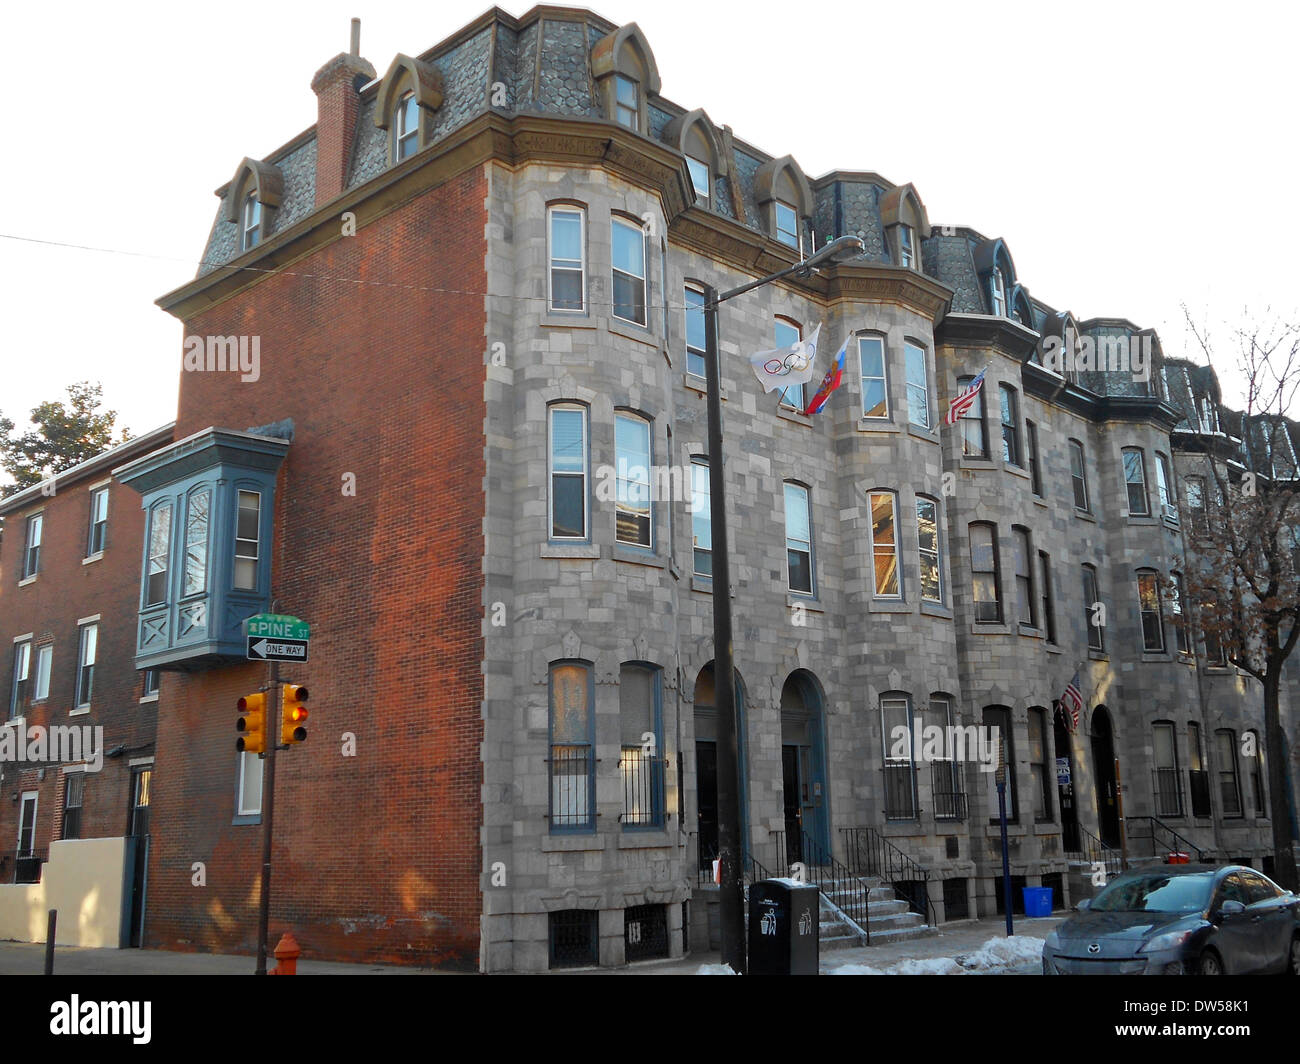 Edward Drinker Cope House listed on the NRHP on May 15, 1975 at 2102 Pine Street in the Rittenhouse Square West neighborhood of - Stock Image